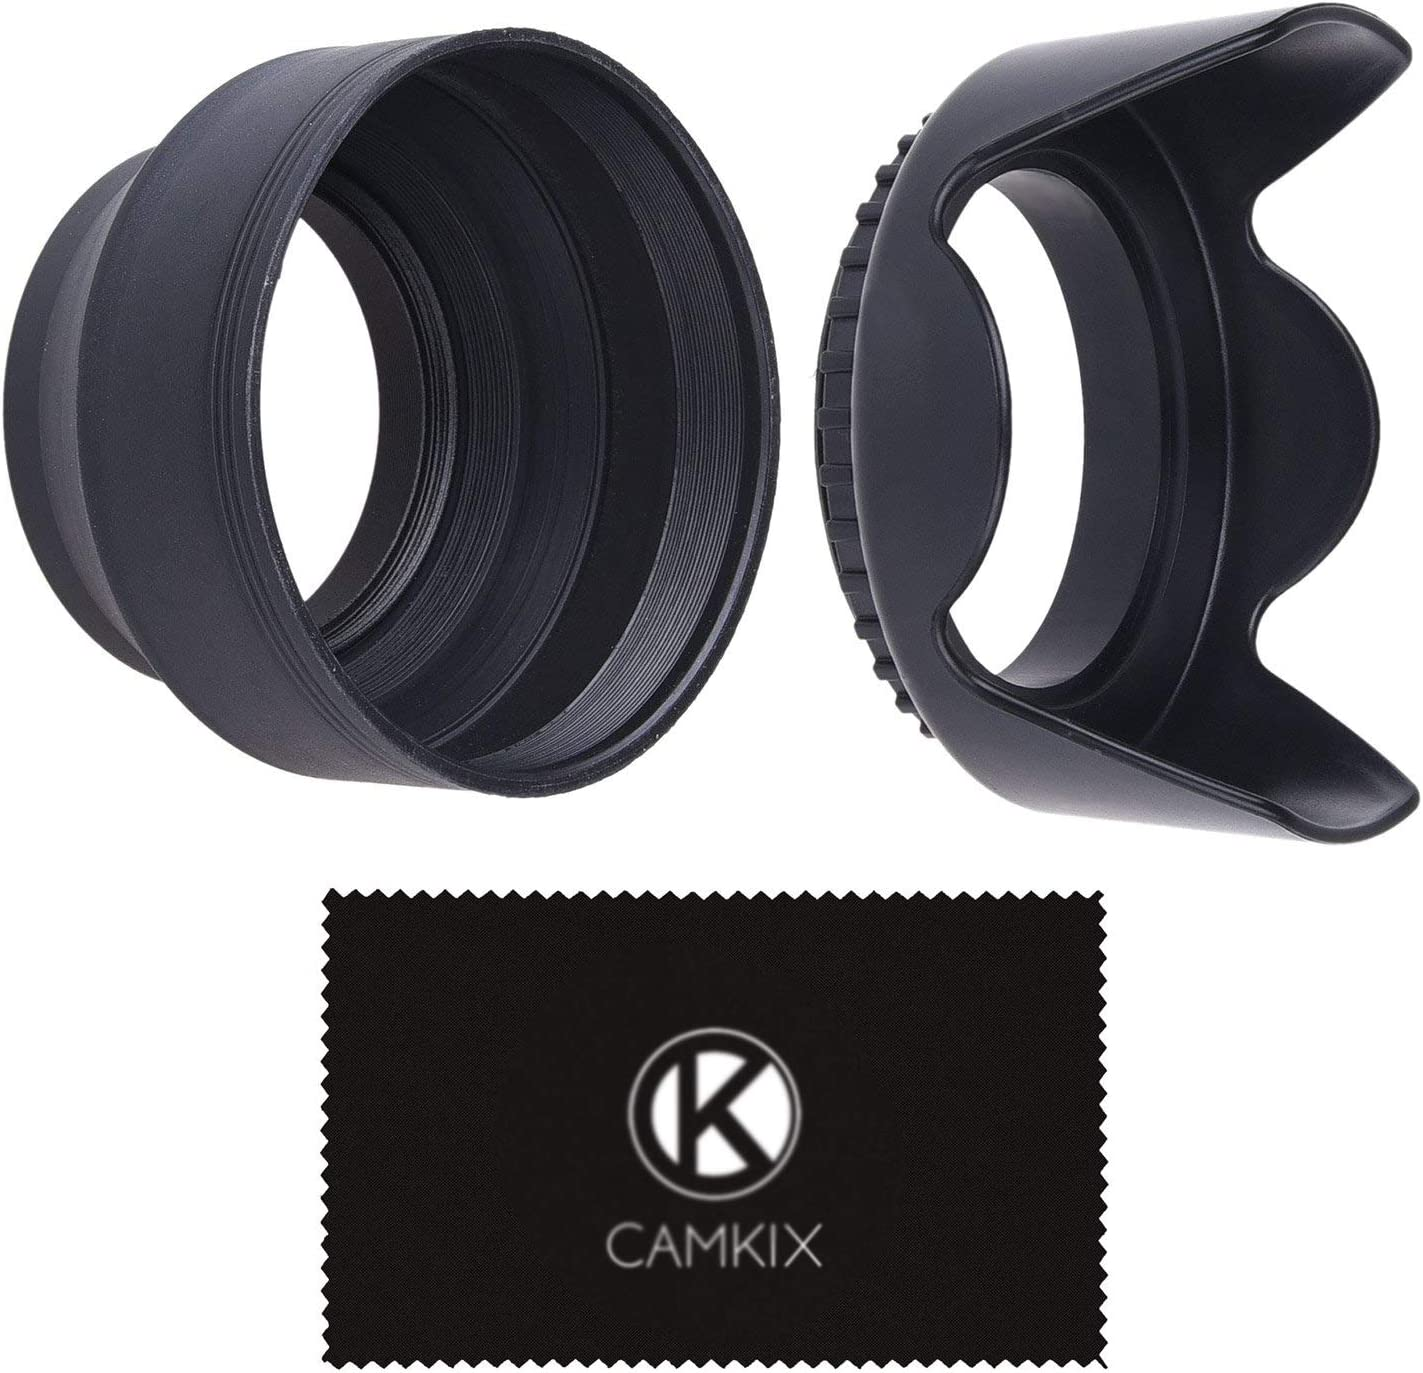 Camera Lens Fashionable Hoods - Rubber Collapsible Set Flower Max 71% OFF Tulip of +